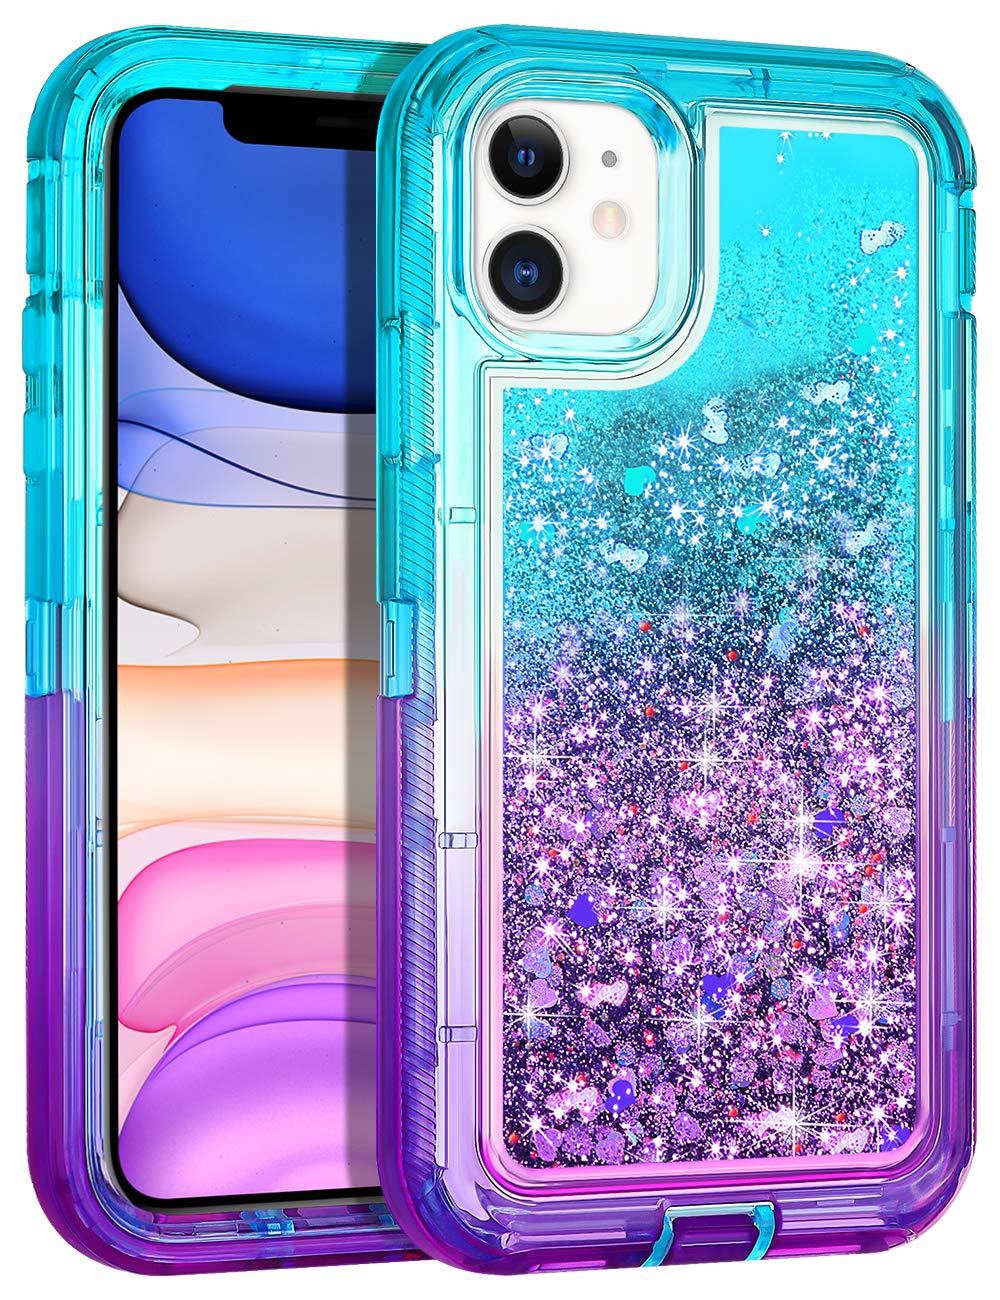 Wollony for iPhone 11 Case Glitter, Heavy Duty Girly Liquid Bling Quicksand 3 in 1 Hybrid Impact Resistant Shockproof Hard Bumper Soft Clear Rubber Protective Cover for iPhone 11 6.1inch Lake-Purple